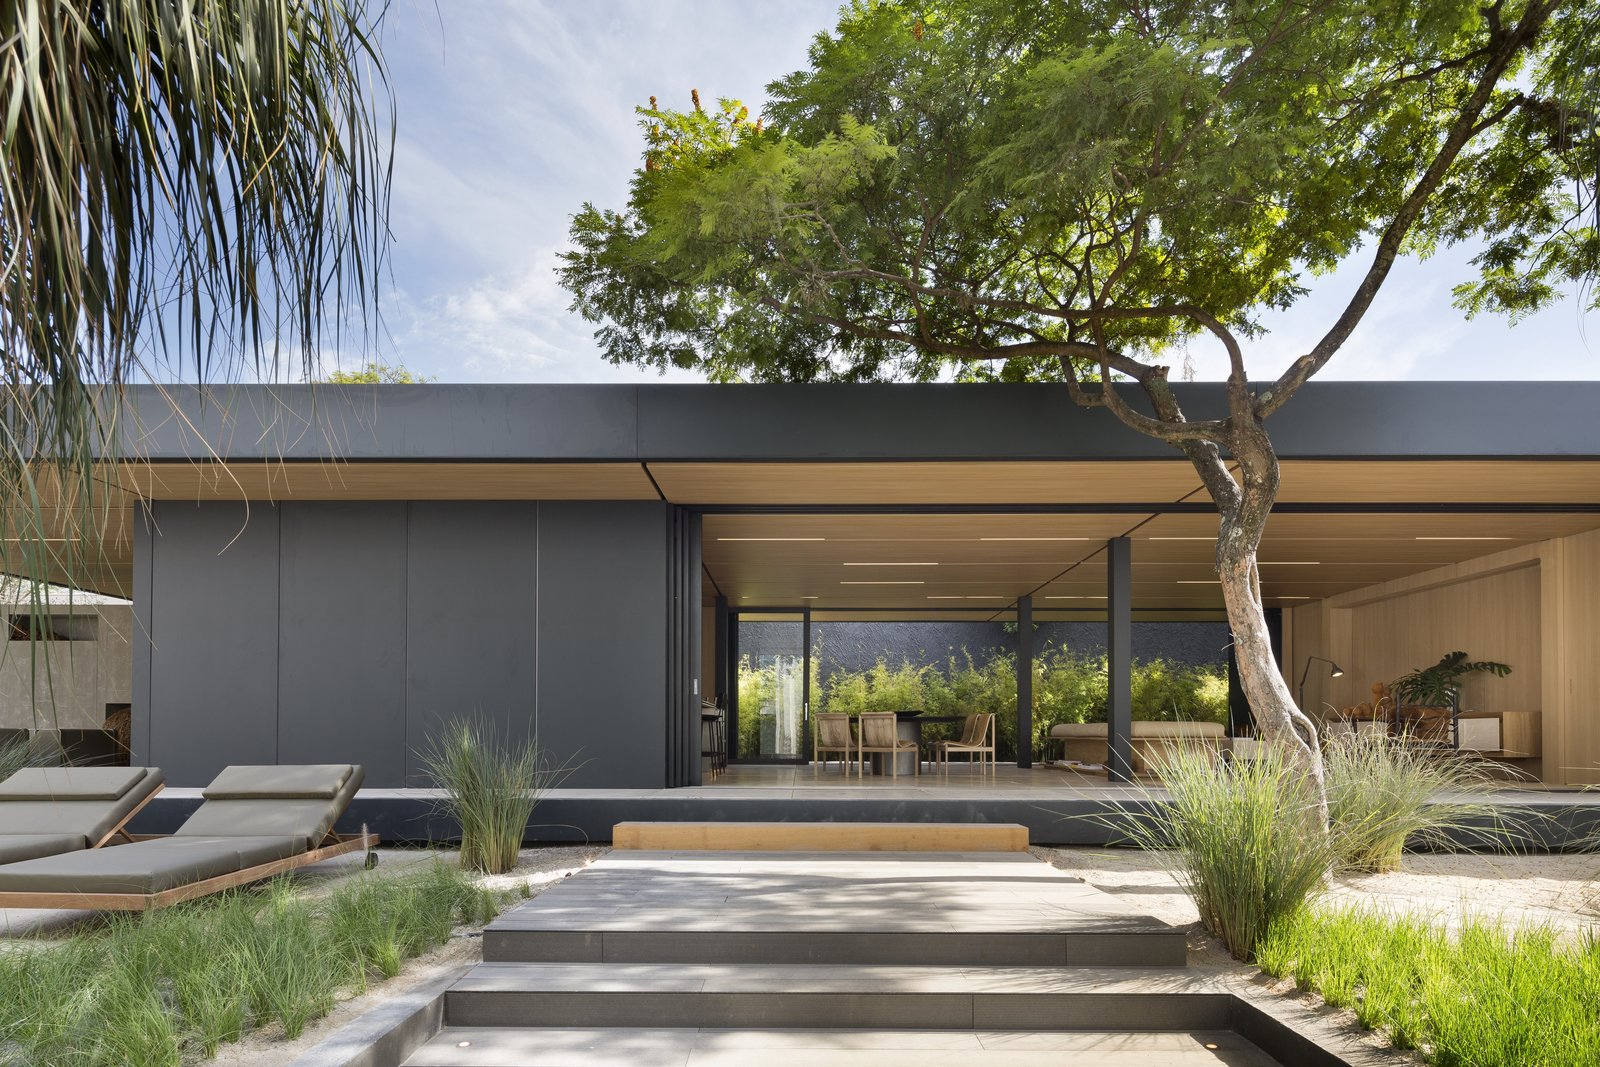 Exterior, House Building Type, Prefab Building Type, Wood Siding Material, Metal Siding Material, Flat RoofLine, and Green Roof Material  Photo 1 of 11 in This Eco-Minded Home in São Paulo Raises the Bar For Prefab